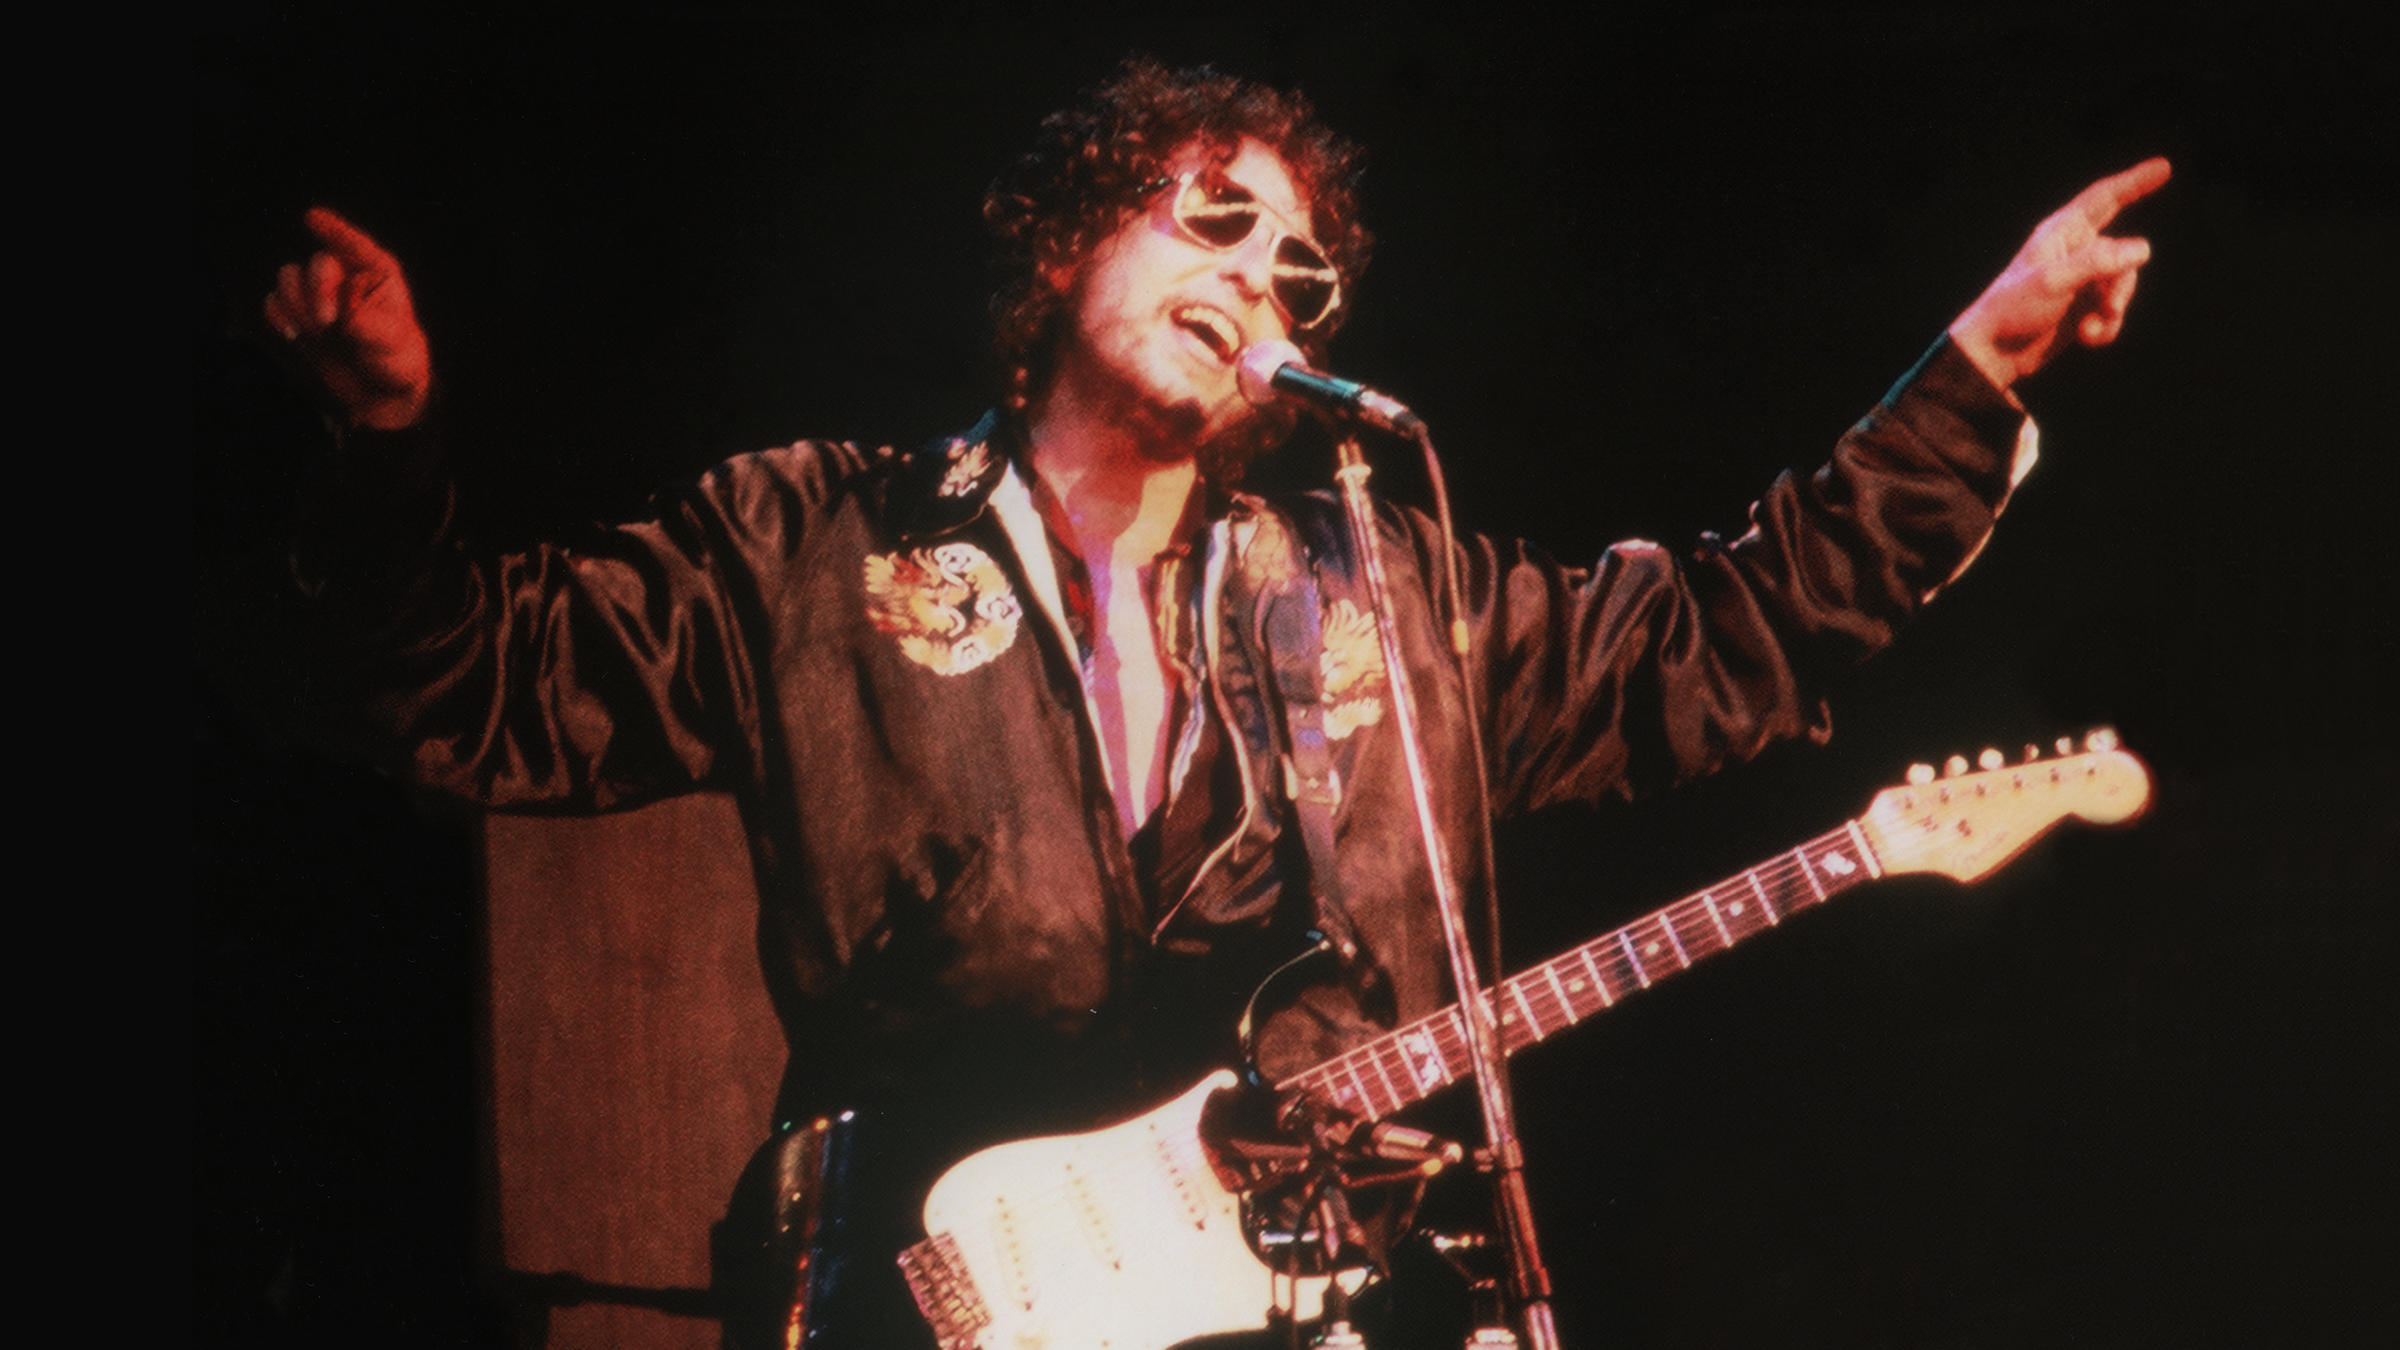 an analysis of the impact of bob dylan on the radio The unheard bob dylan: inside wbai's archive of early dylan interviews and songs in honor of bob dylan's 70th birthday, democracy now airs rare interviews and early recordings with bob dylan preserved in the pacifica radio archive dylan was born robert allen zimmerman on may 24, 1941,.